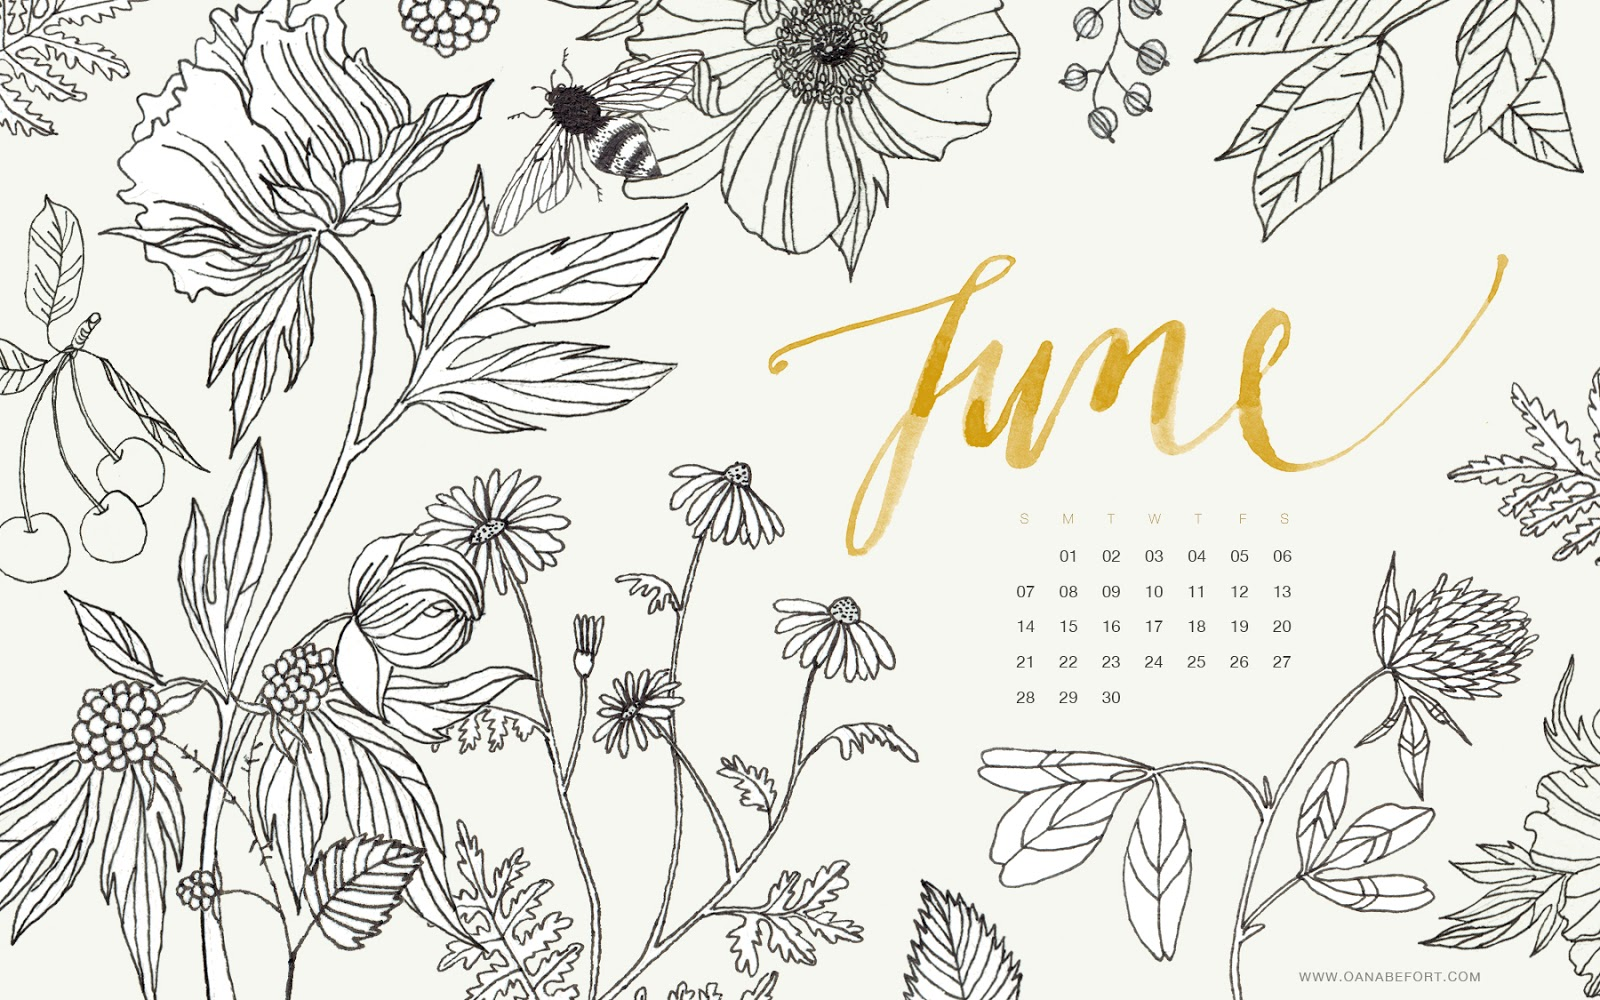 Desktop Calendar 2015 Illustration